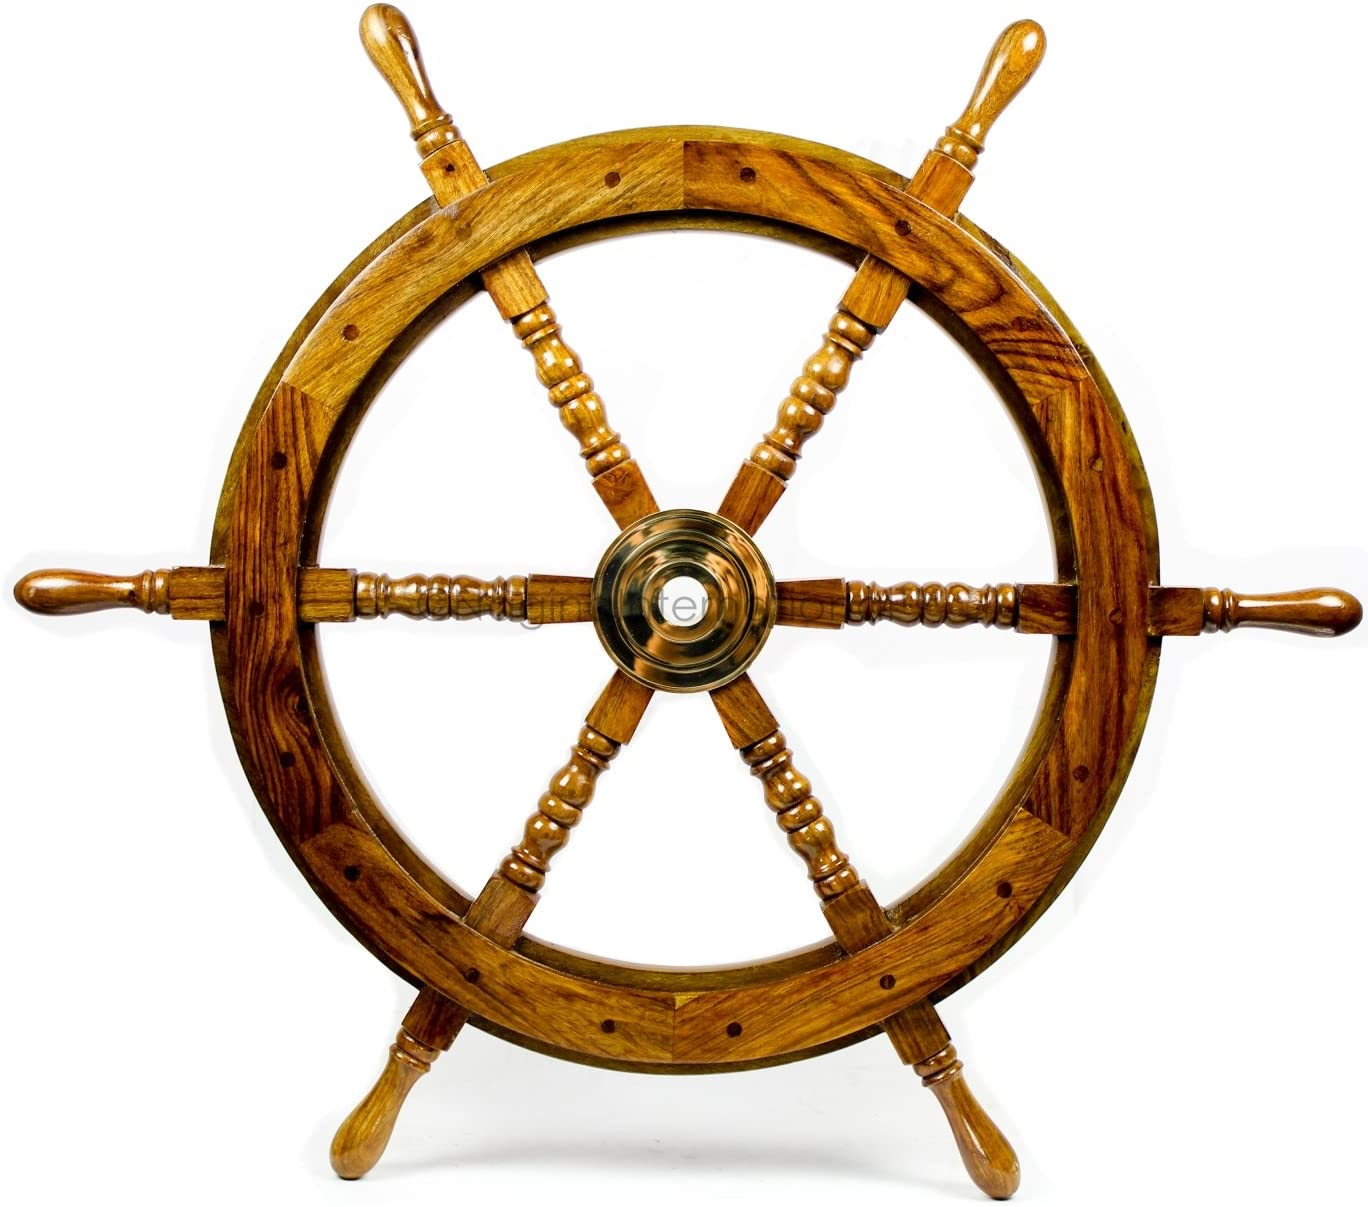 Nagina International Nautical Handcrafted Wooden Ship Wheel - Home Wall Decor (30 Inches, Natural Wood)